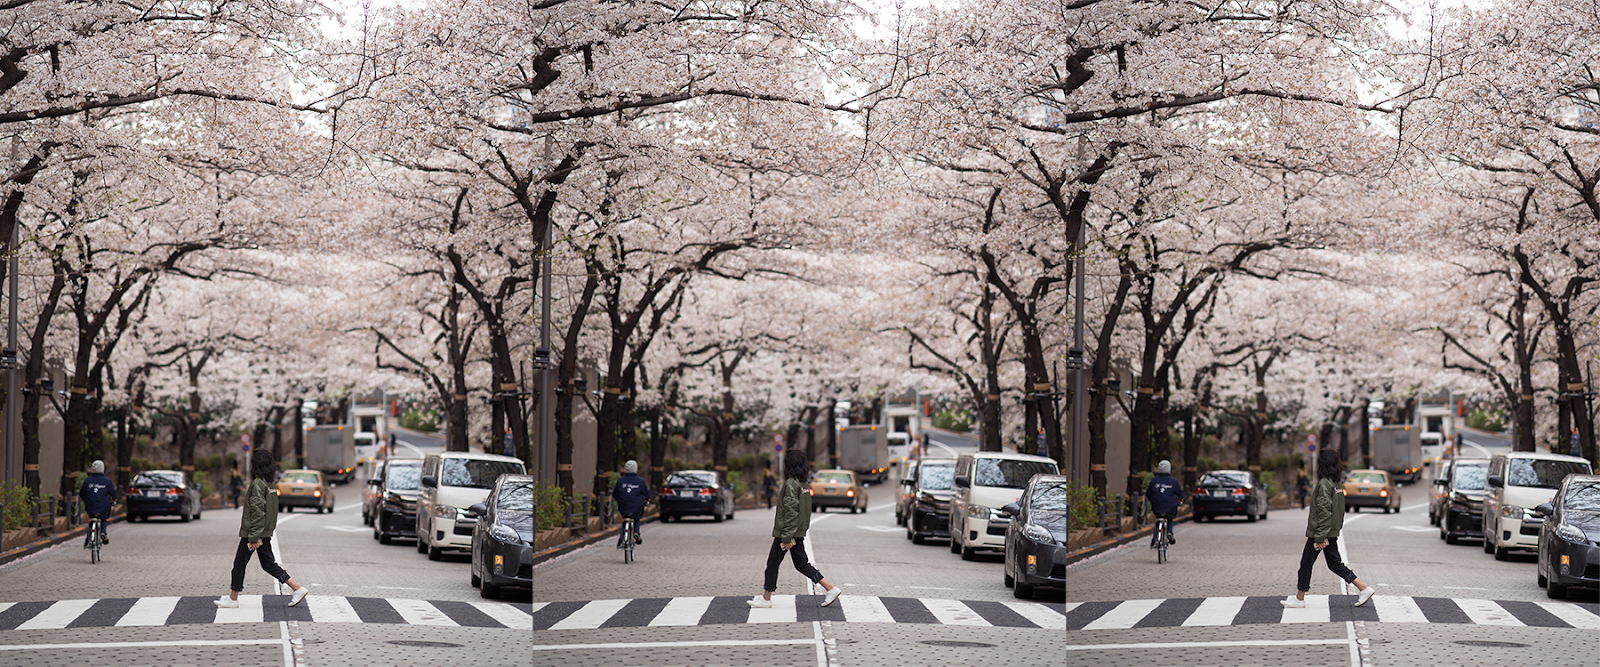 Cherry blossom underpass, cherry blossom spots in Roppongi, Spring in Tokyo, best spots to view cherry blossoms, Tokyo based style blogger FOREVERVANNY